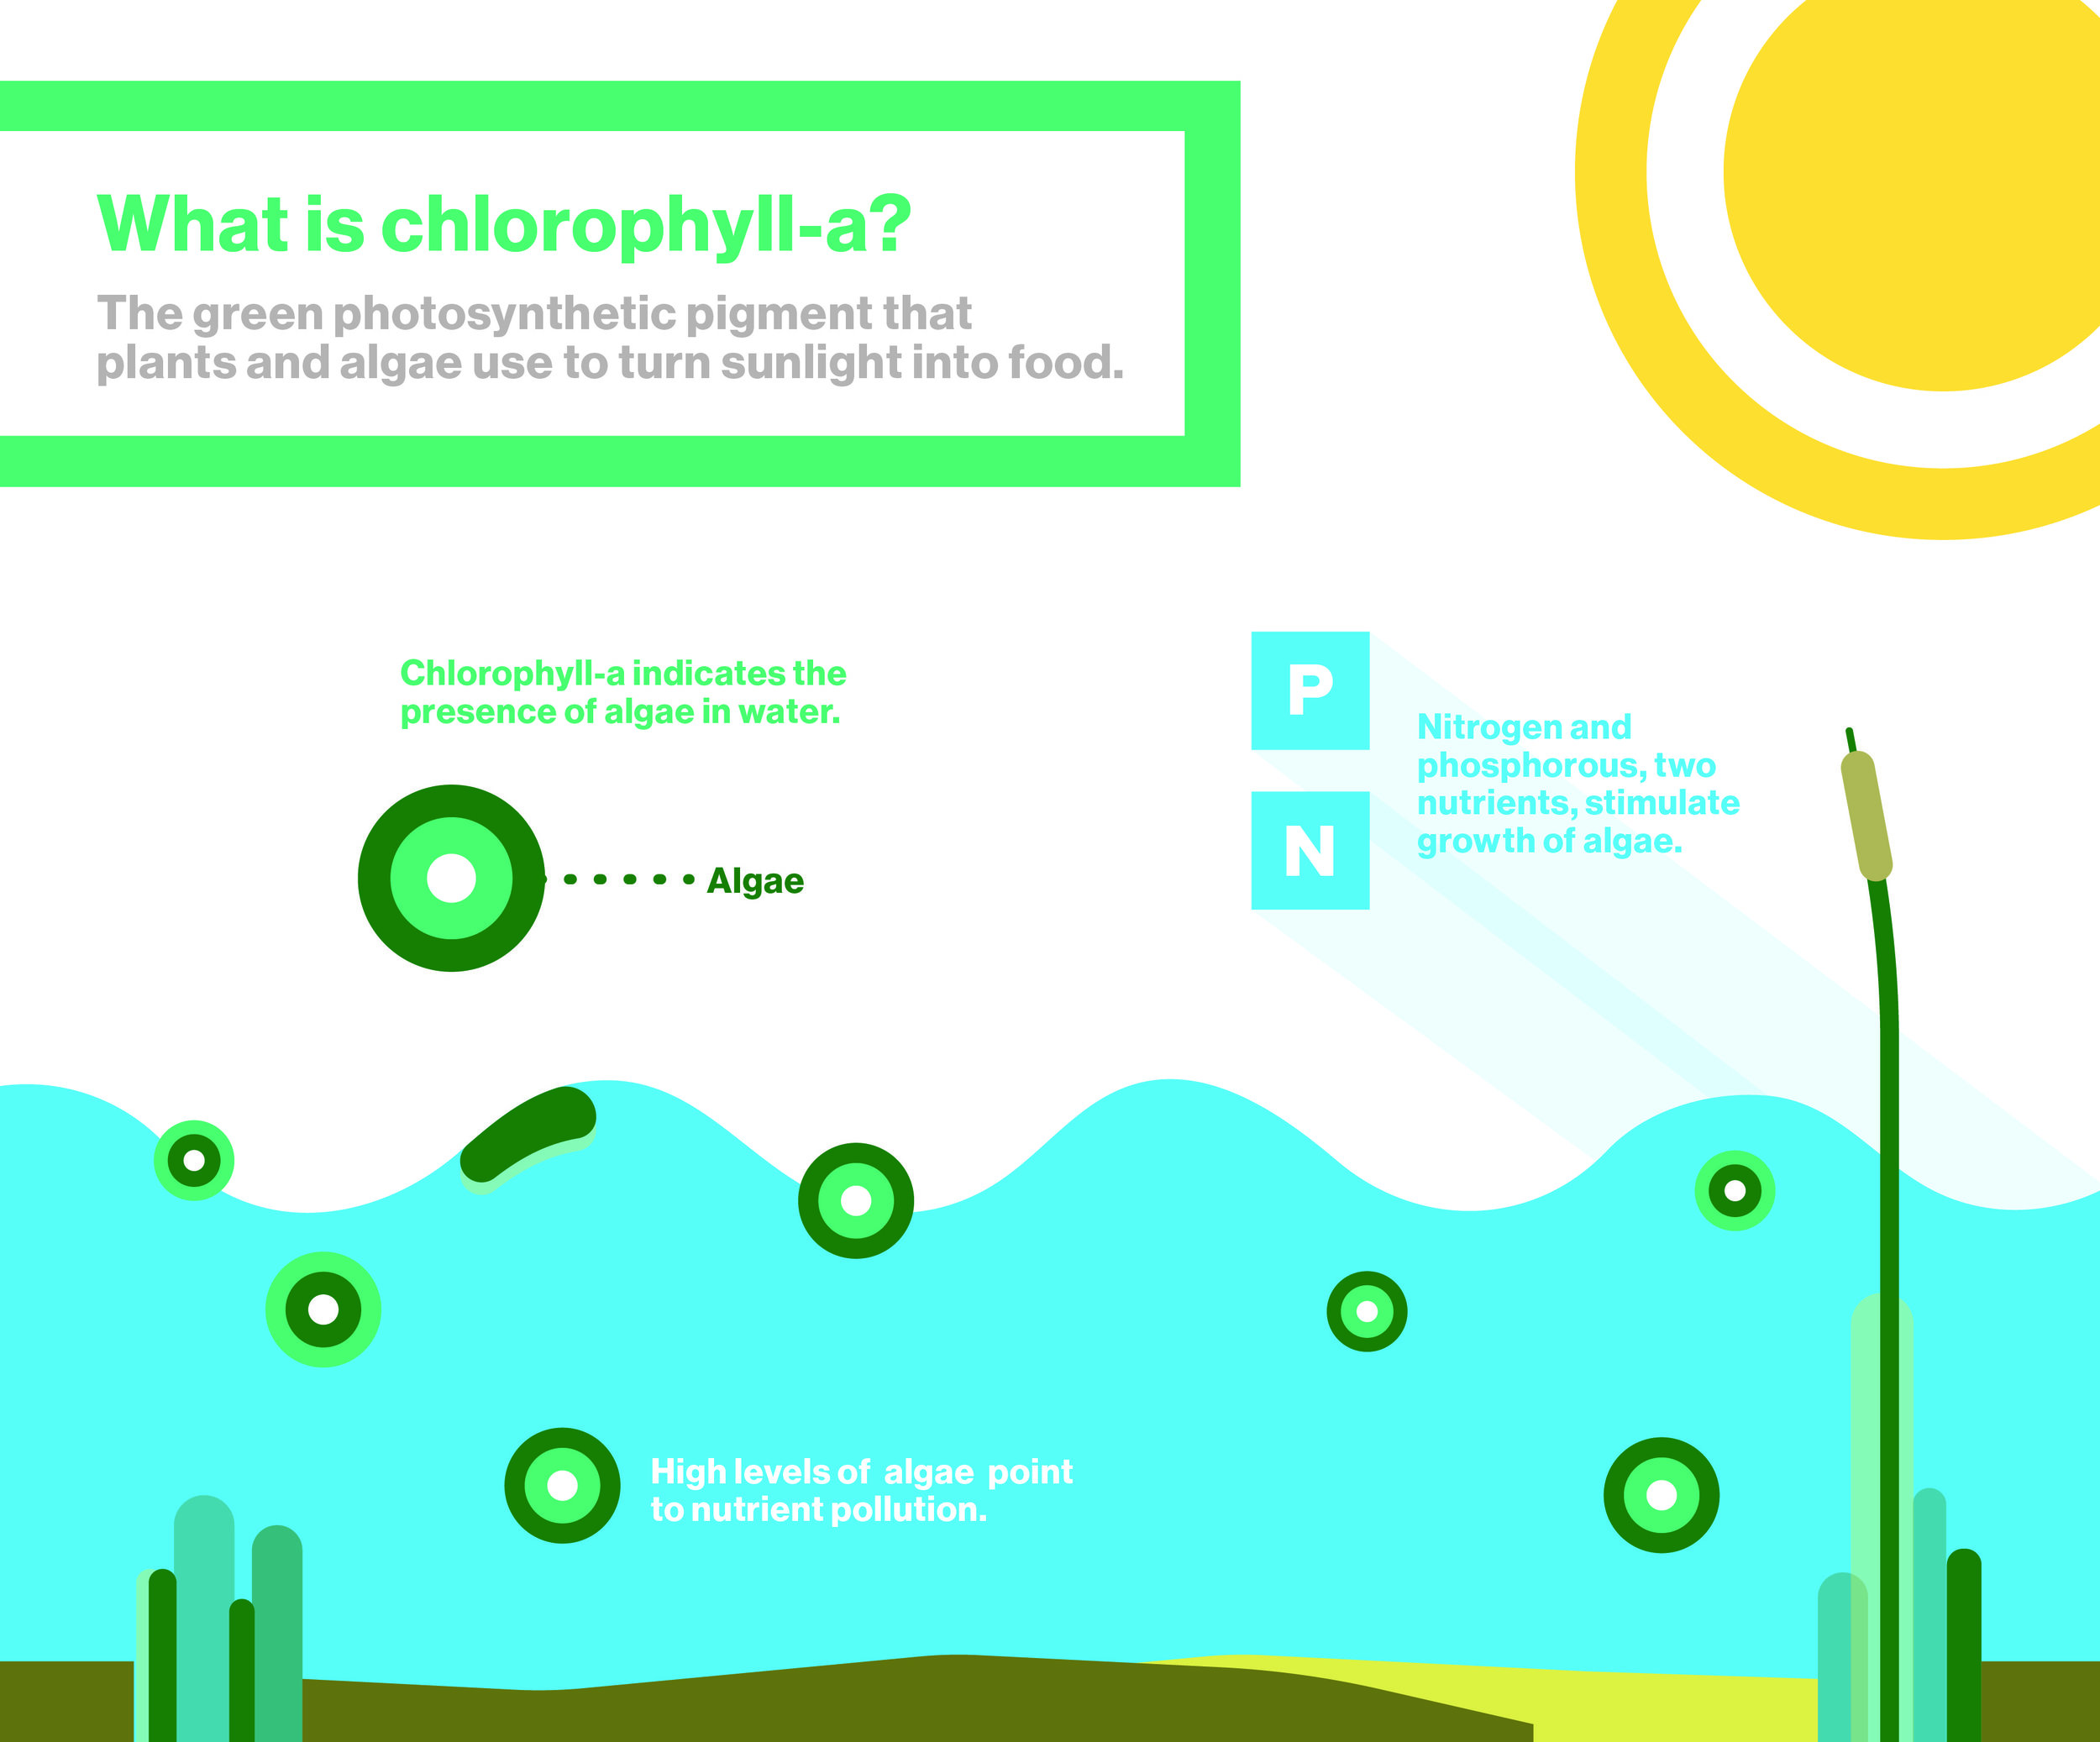 What is chlorophyll-a?